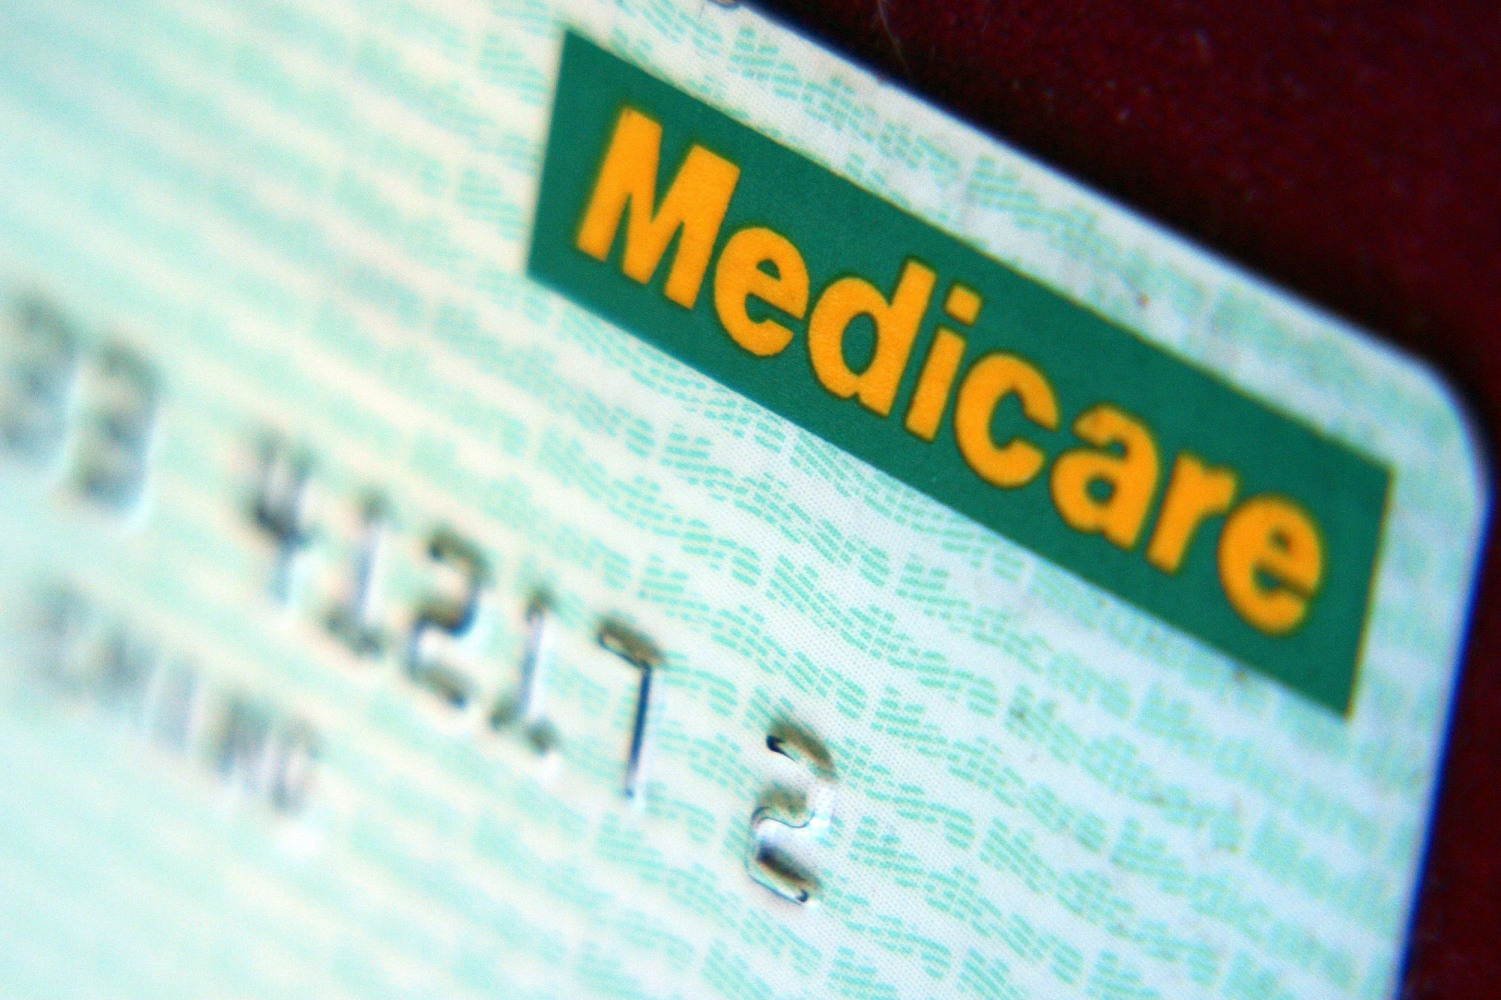 CMS poised to replace Social Security numbers on Medicare beneficiaries' ID cards